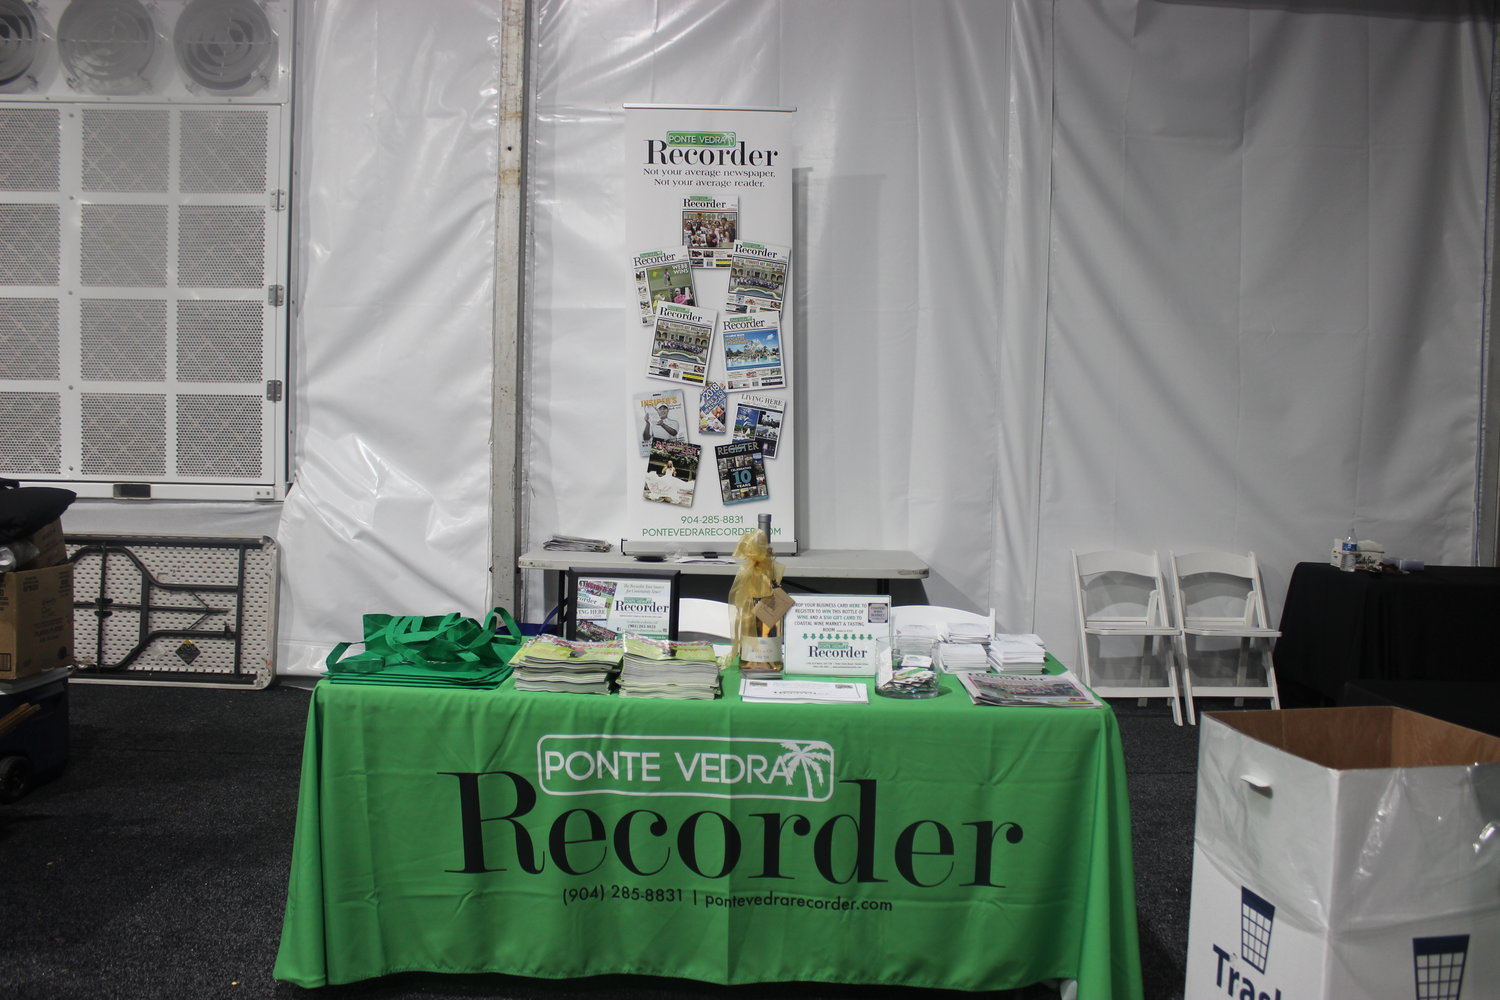 The Ponte Vedra Recorder table